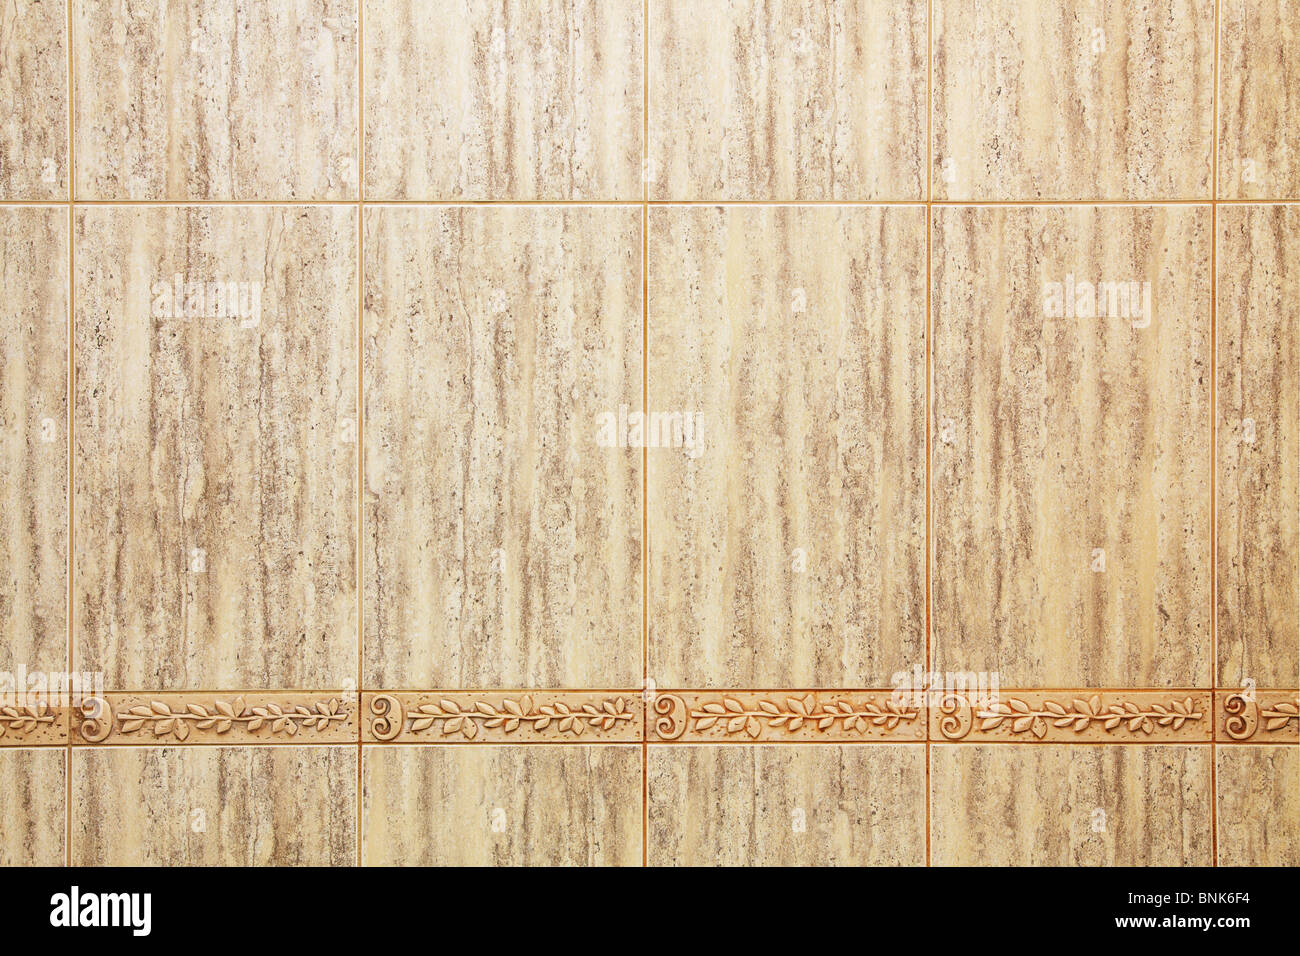 Ceramic tile - Stock Image